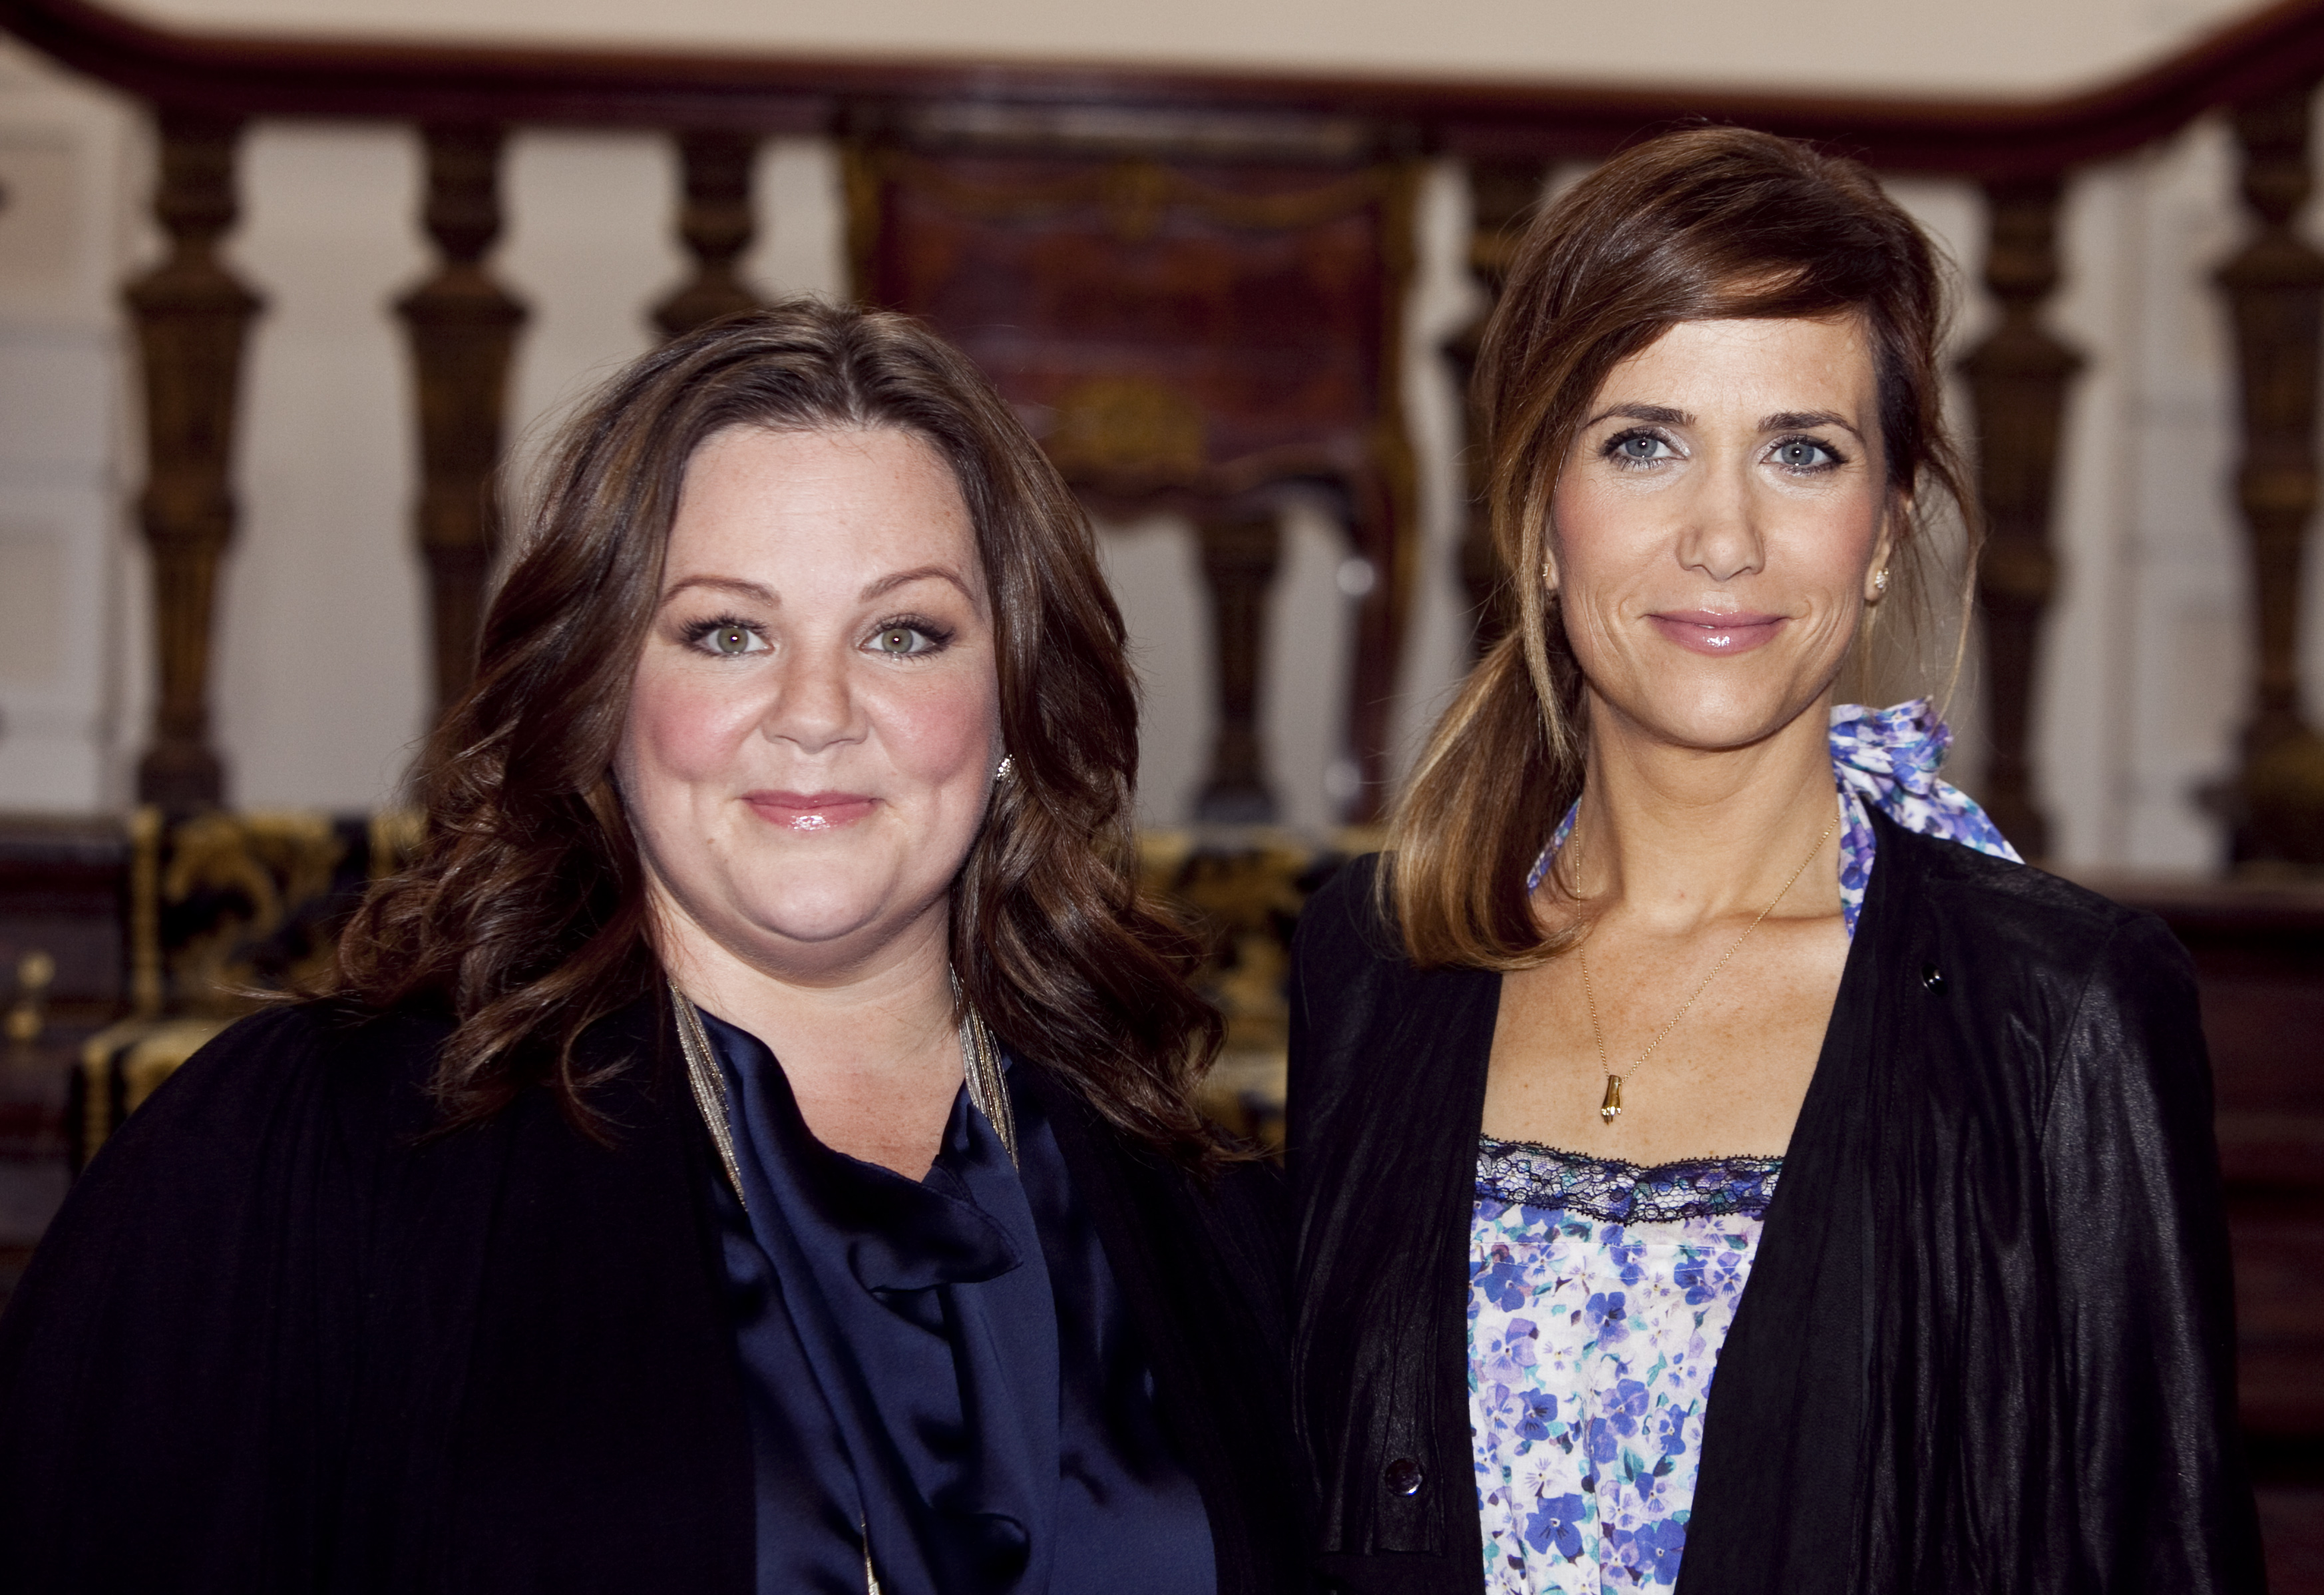 Melissa Mc Carthy and Kristen Wiig attend the photocall for 'Bridesmaids'